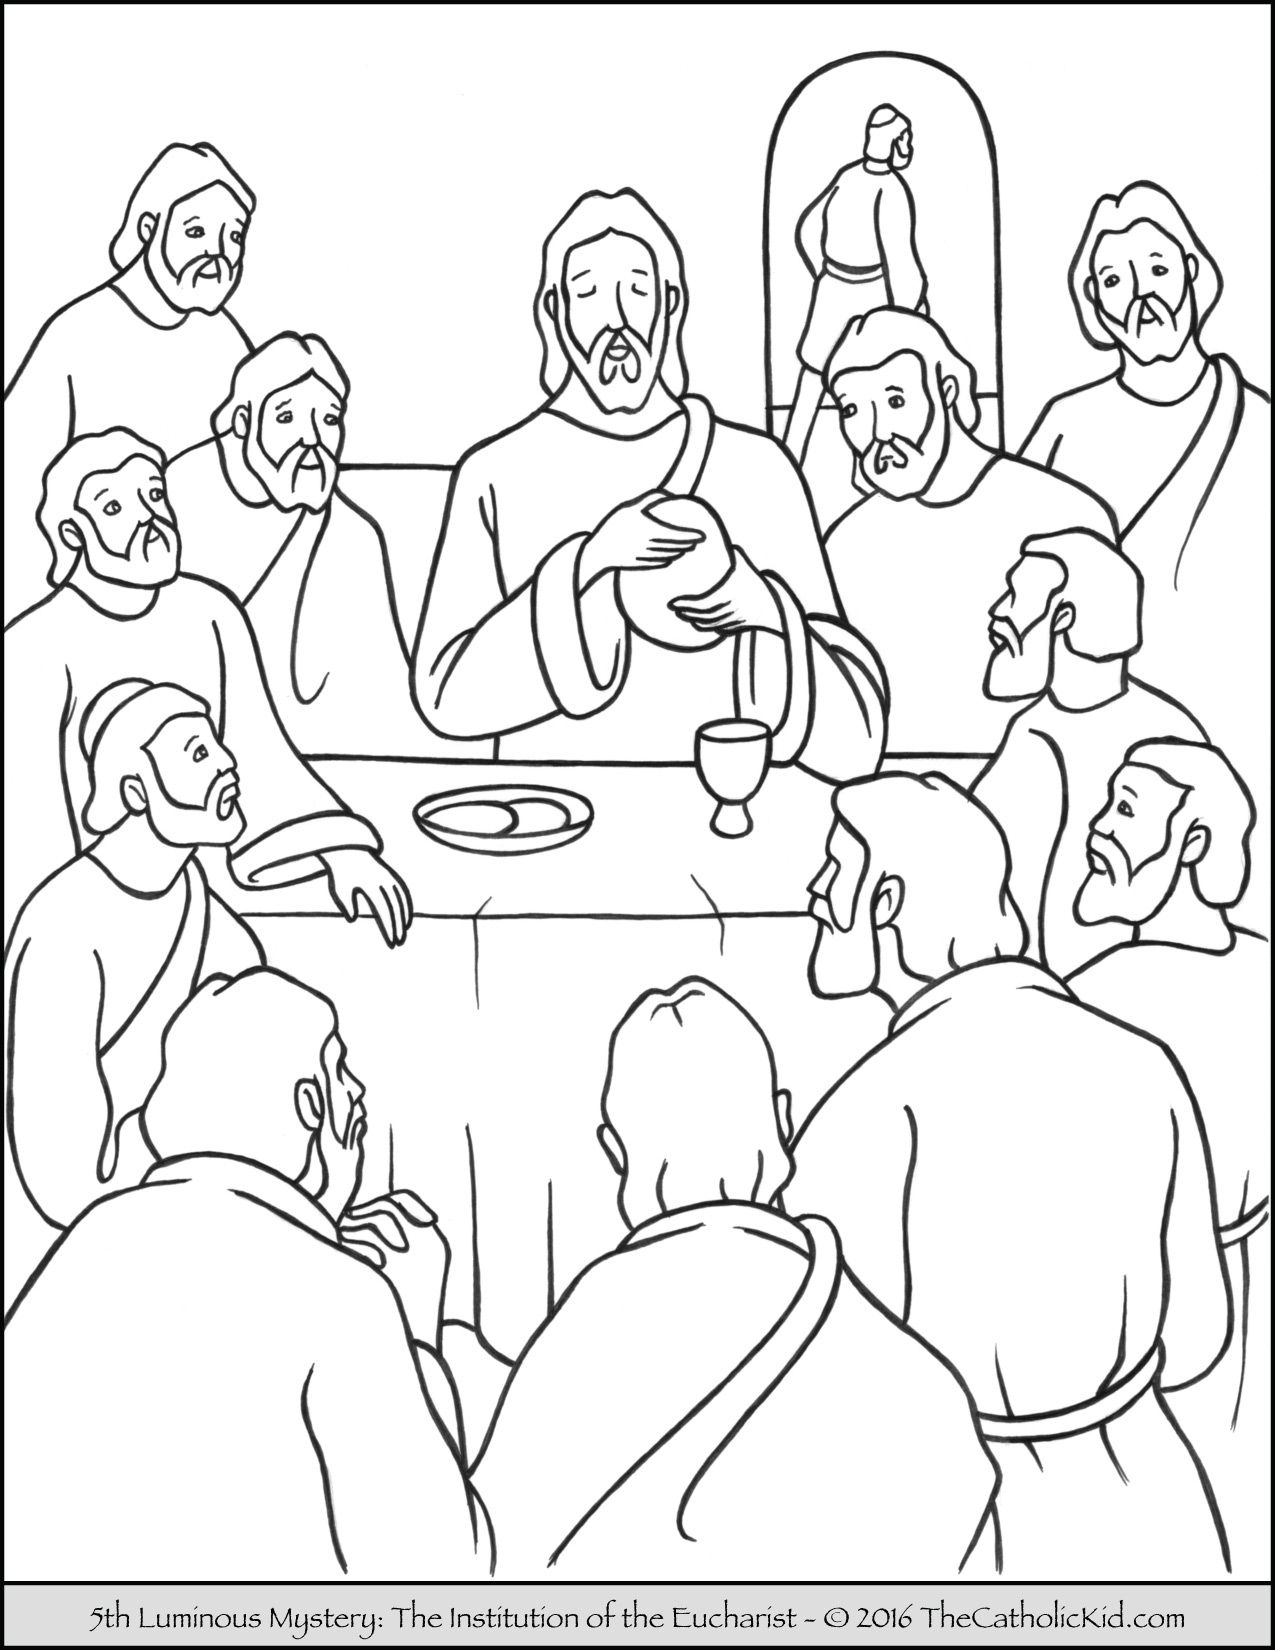 The 5th Luminous Mystery Coloring Page The Institution of the